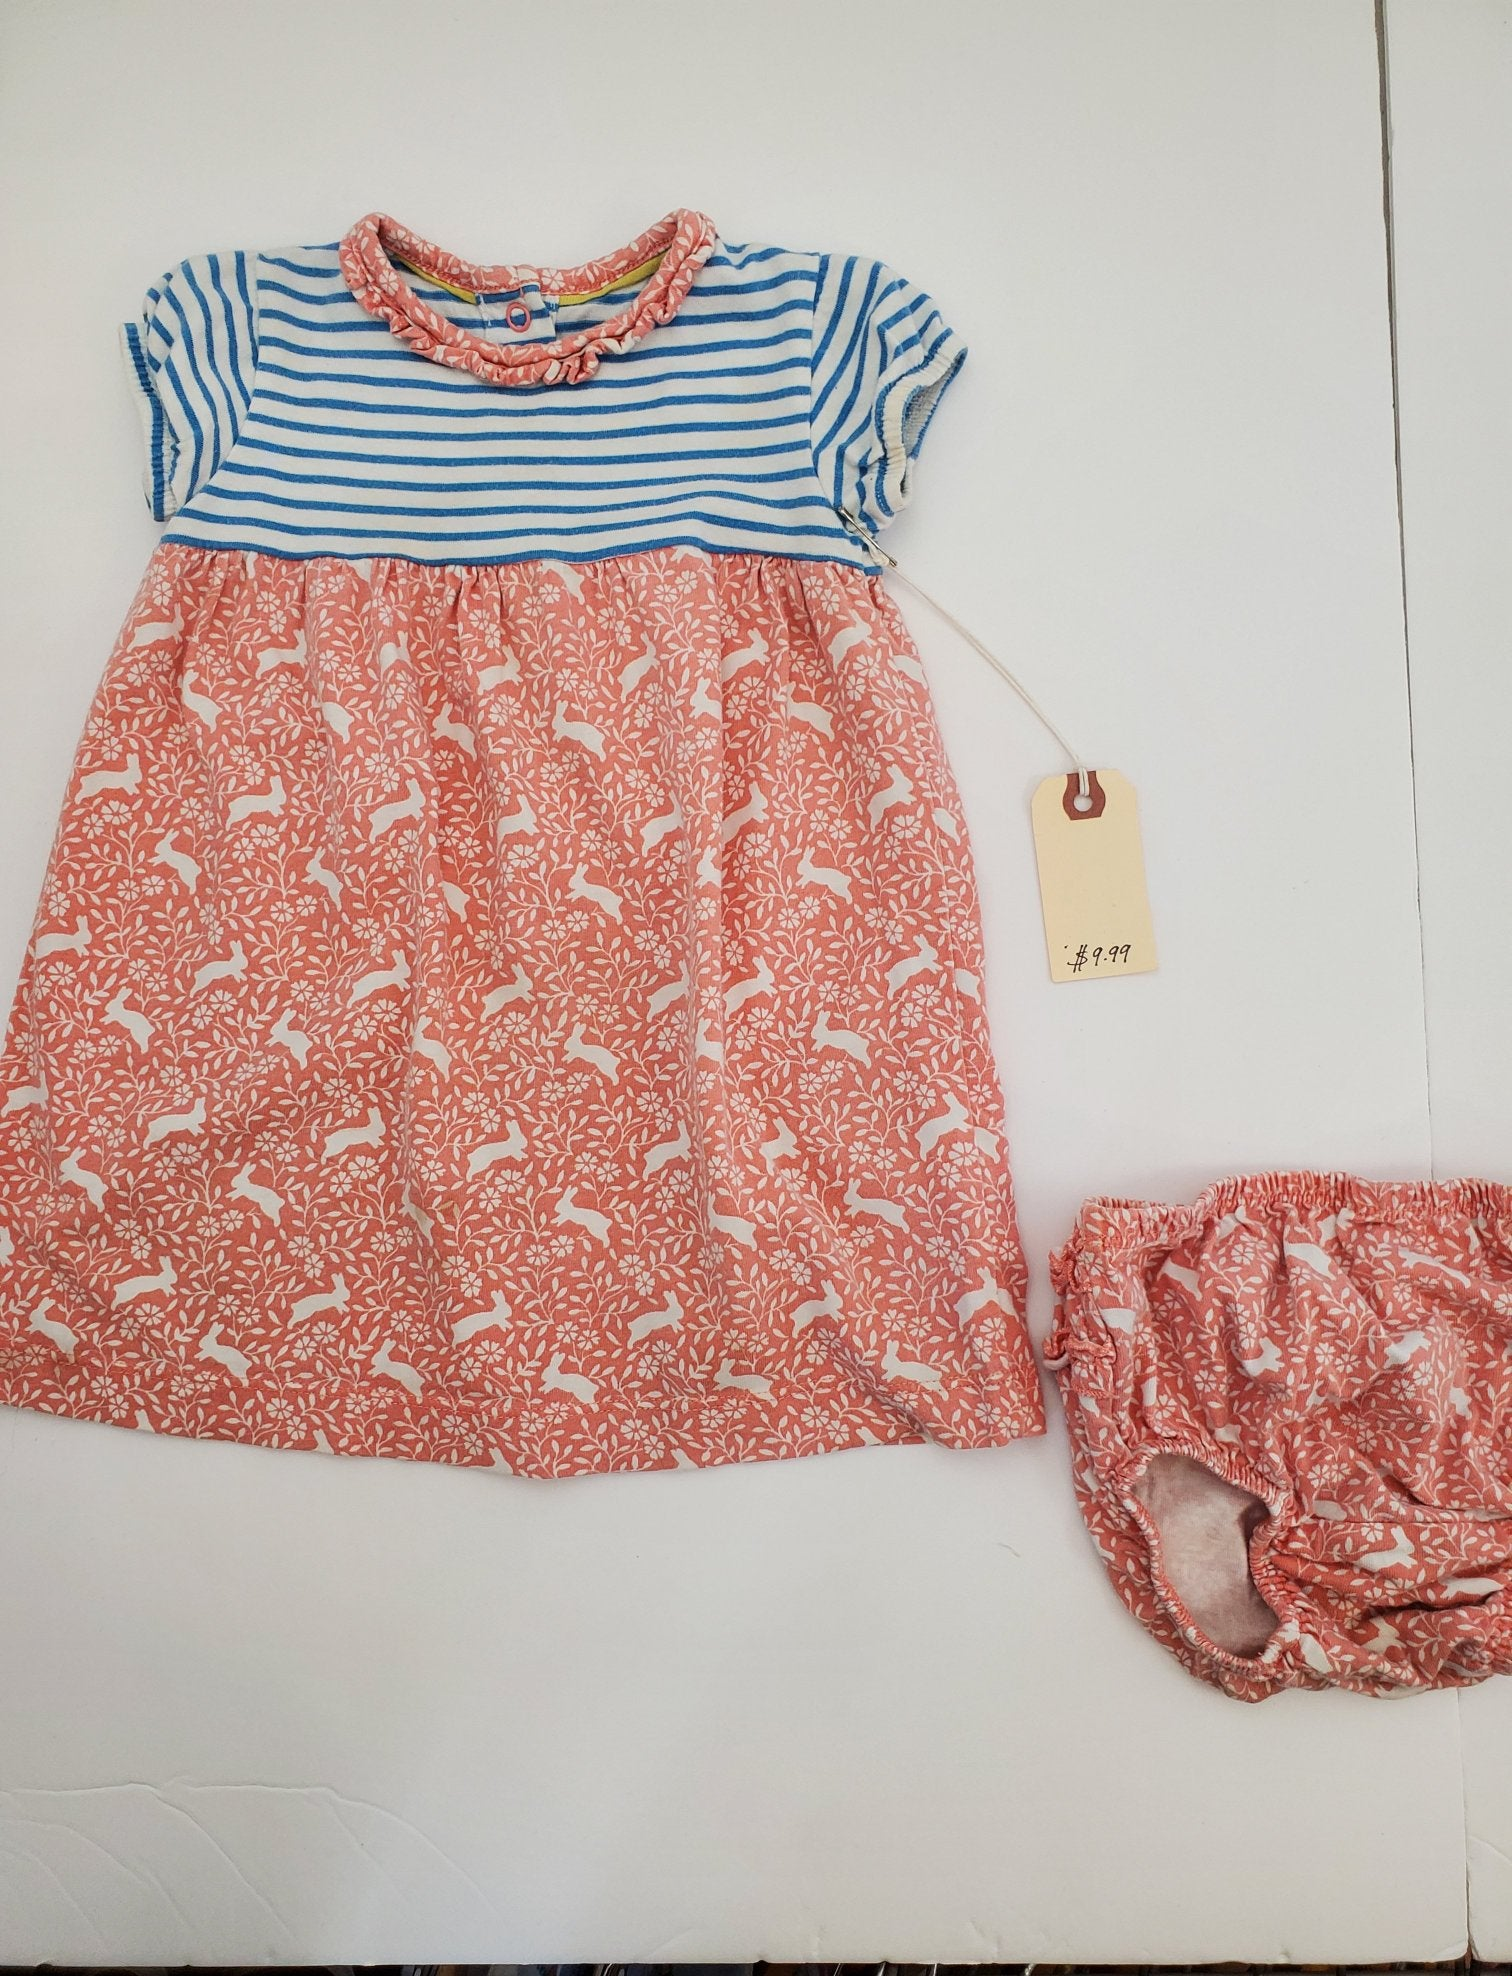 Resale 6-12 m Boden Dress & Bloomers Set - Coral Bunnies / Navy Stripes